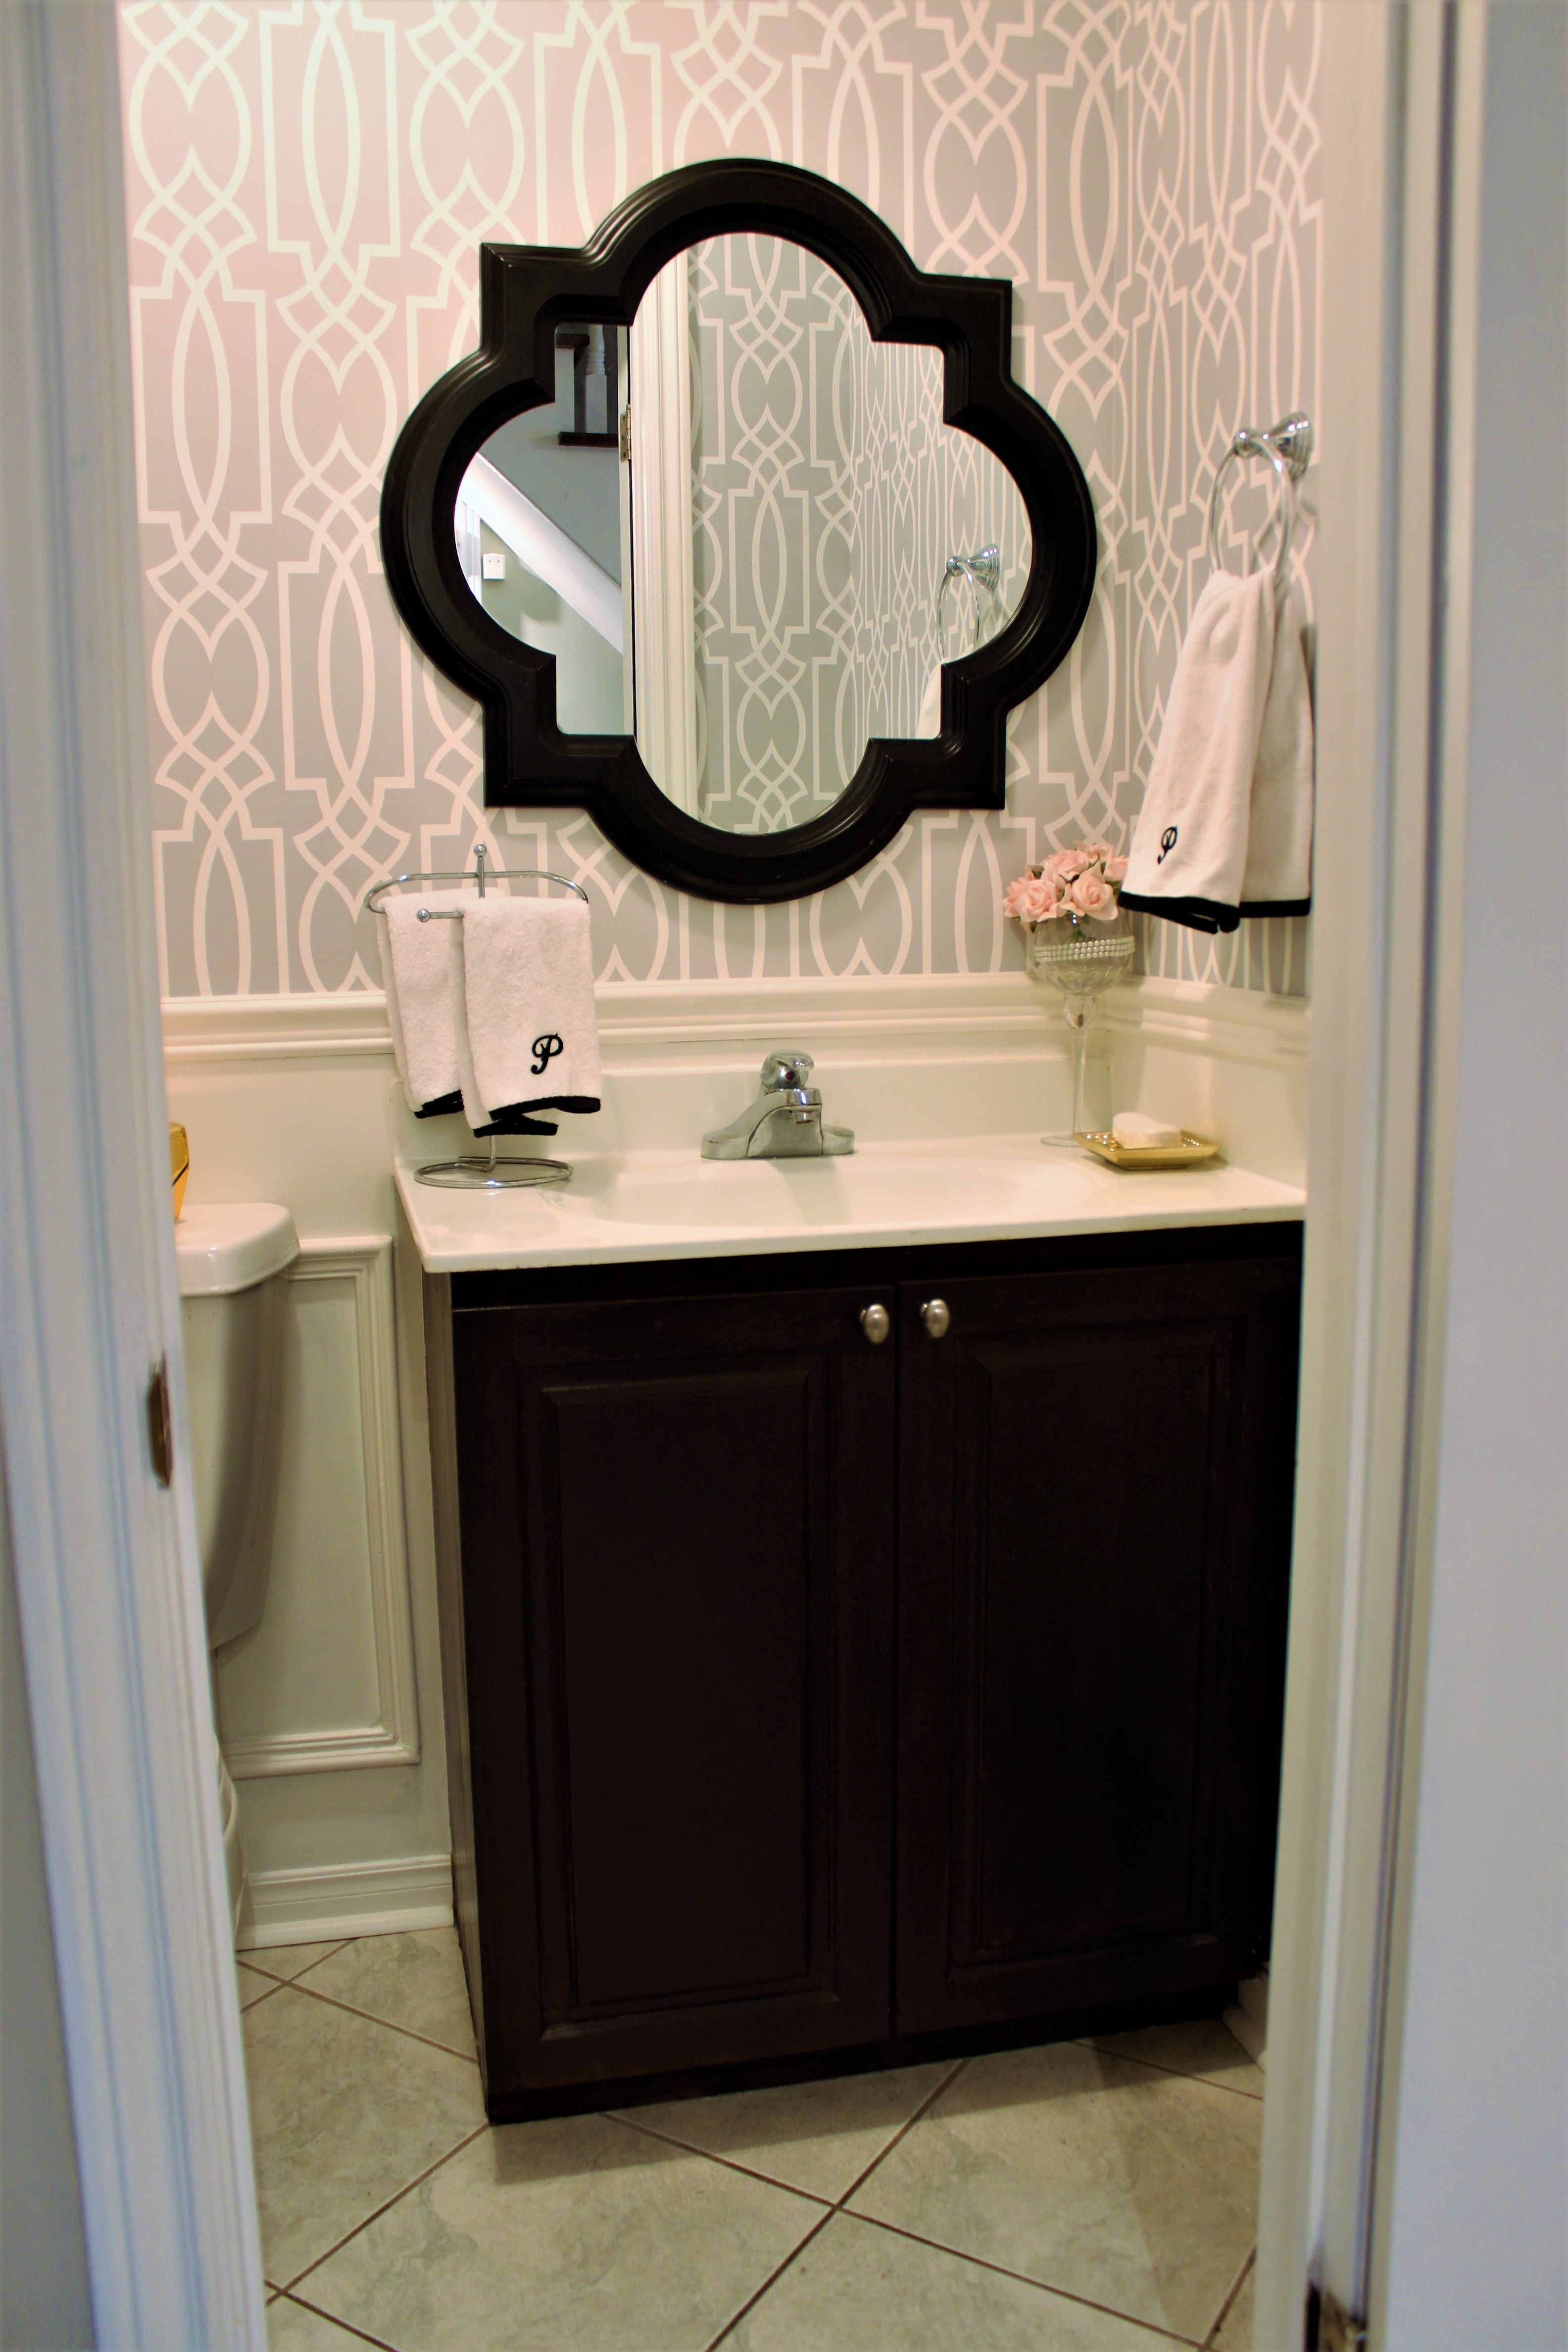 Powder Room Update   Week 5 Final Reveal. Wallpaper In Powder Room, Grey And